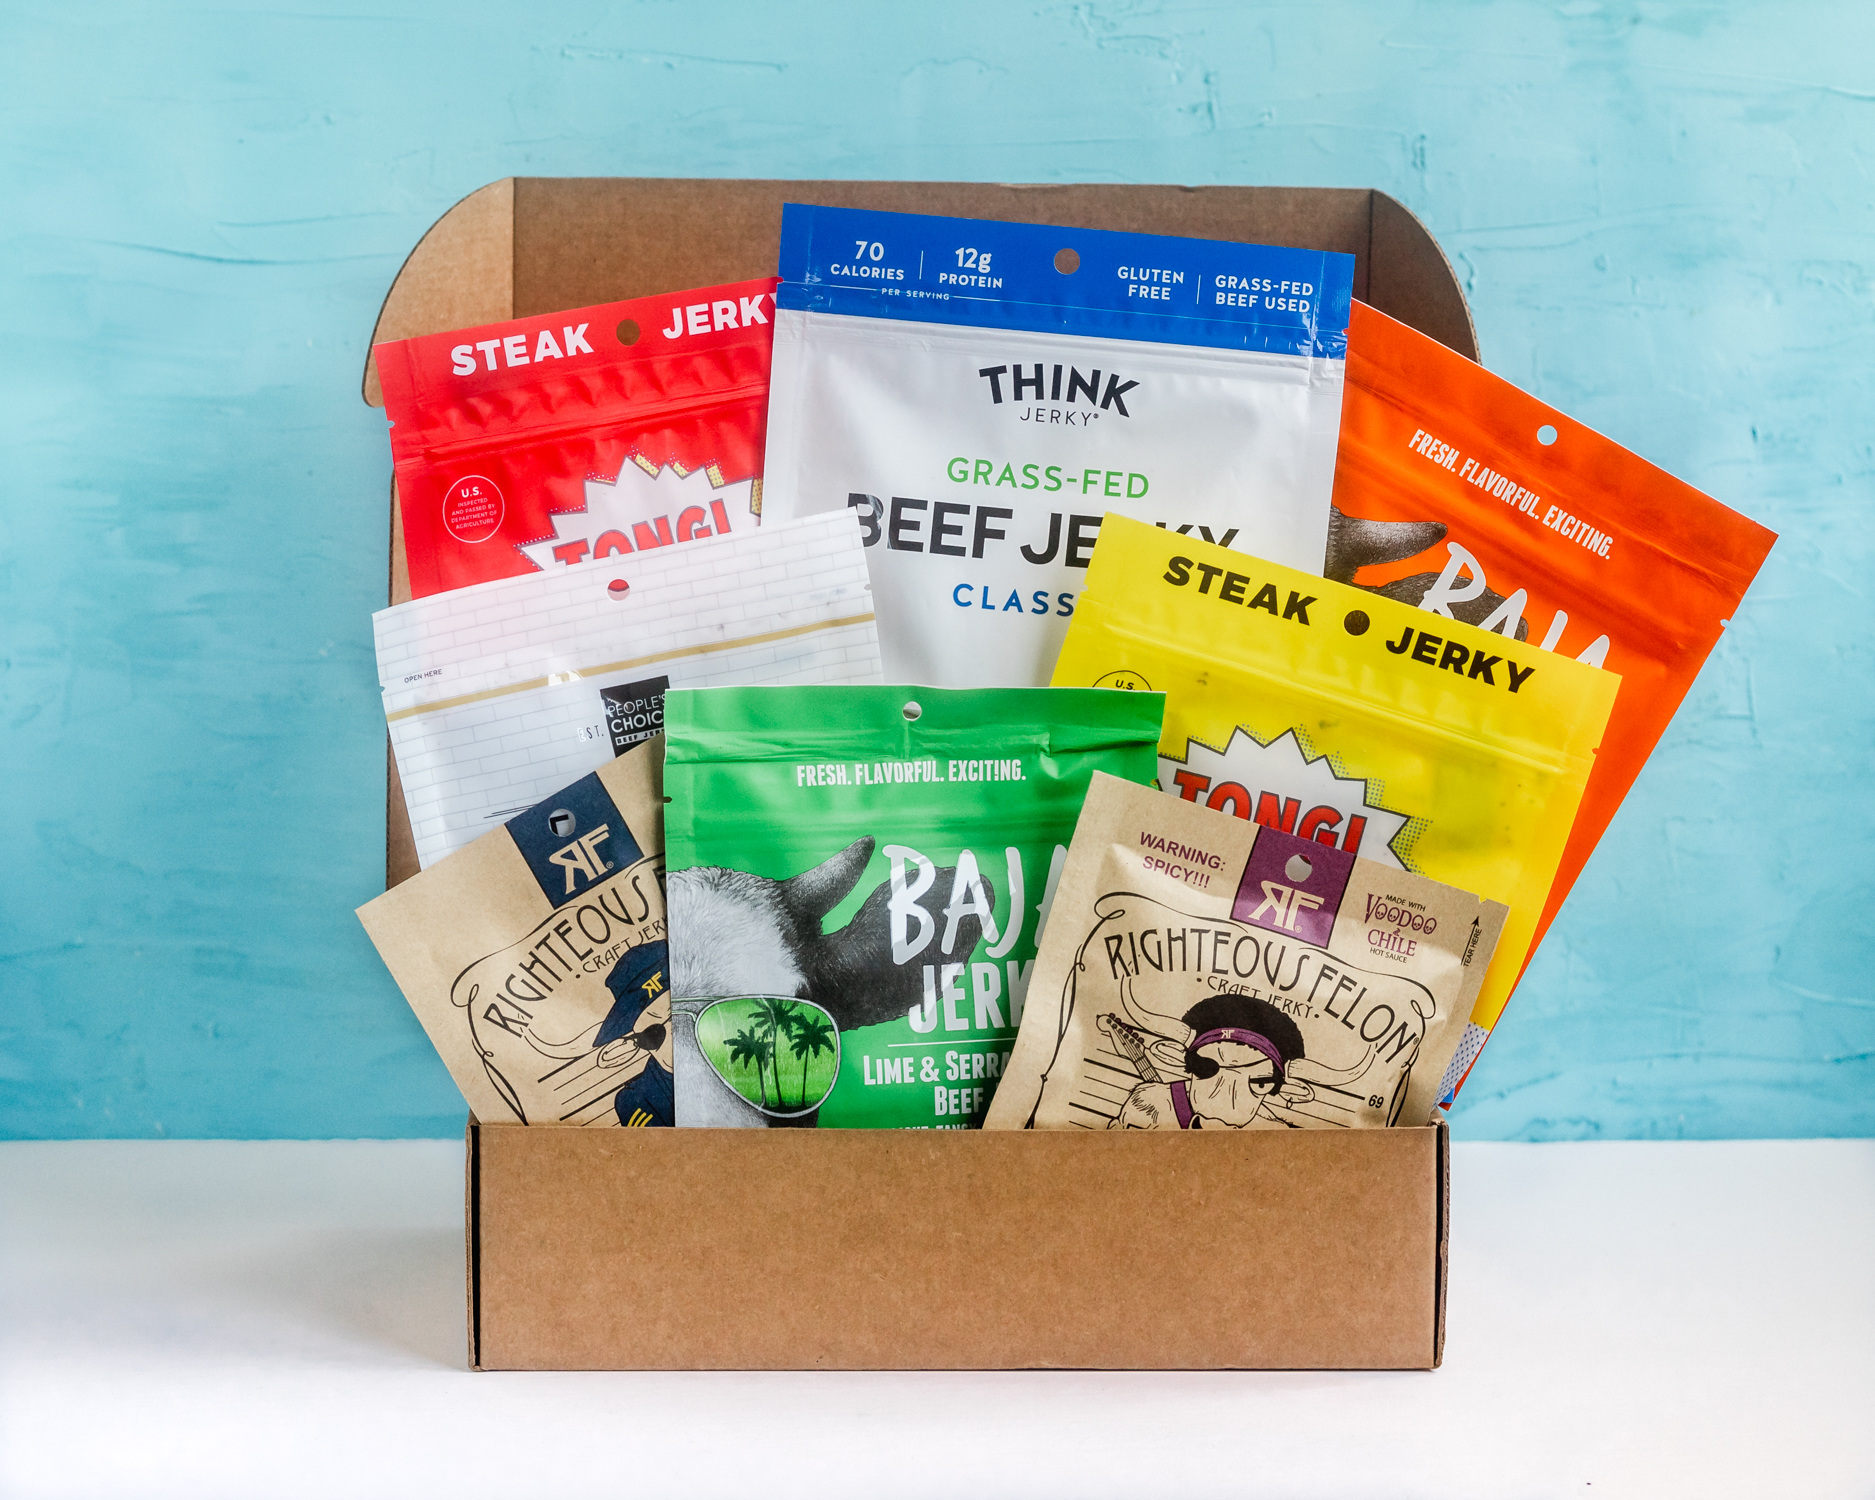 Win a box of assorted beef jerky from Craft Jerky Giveaway Image